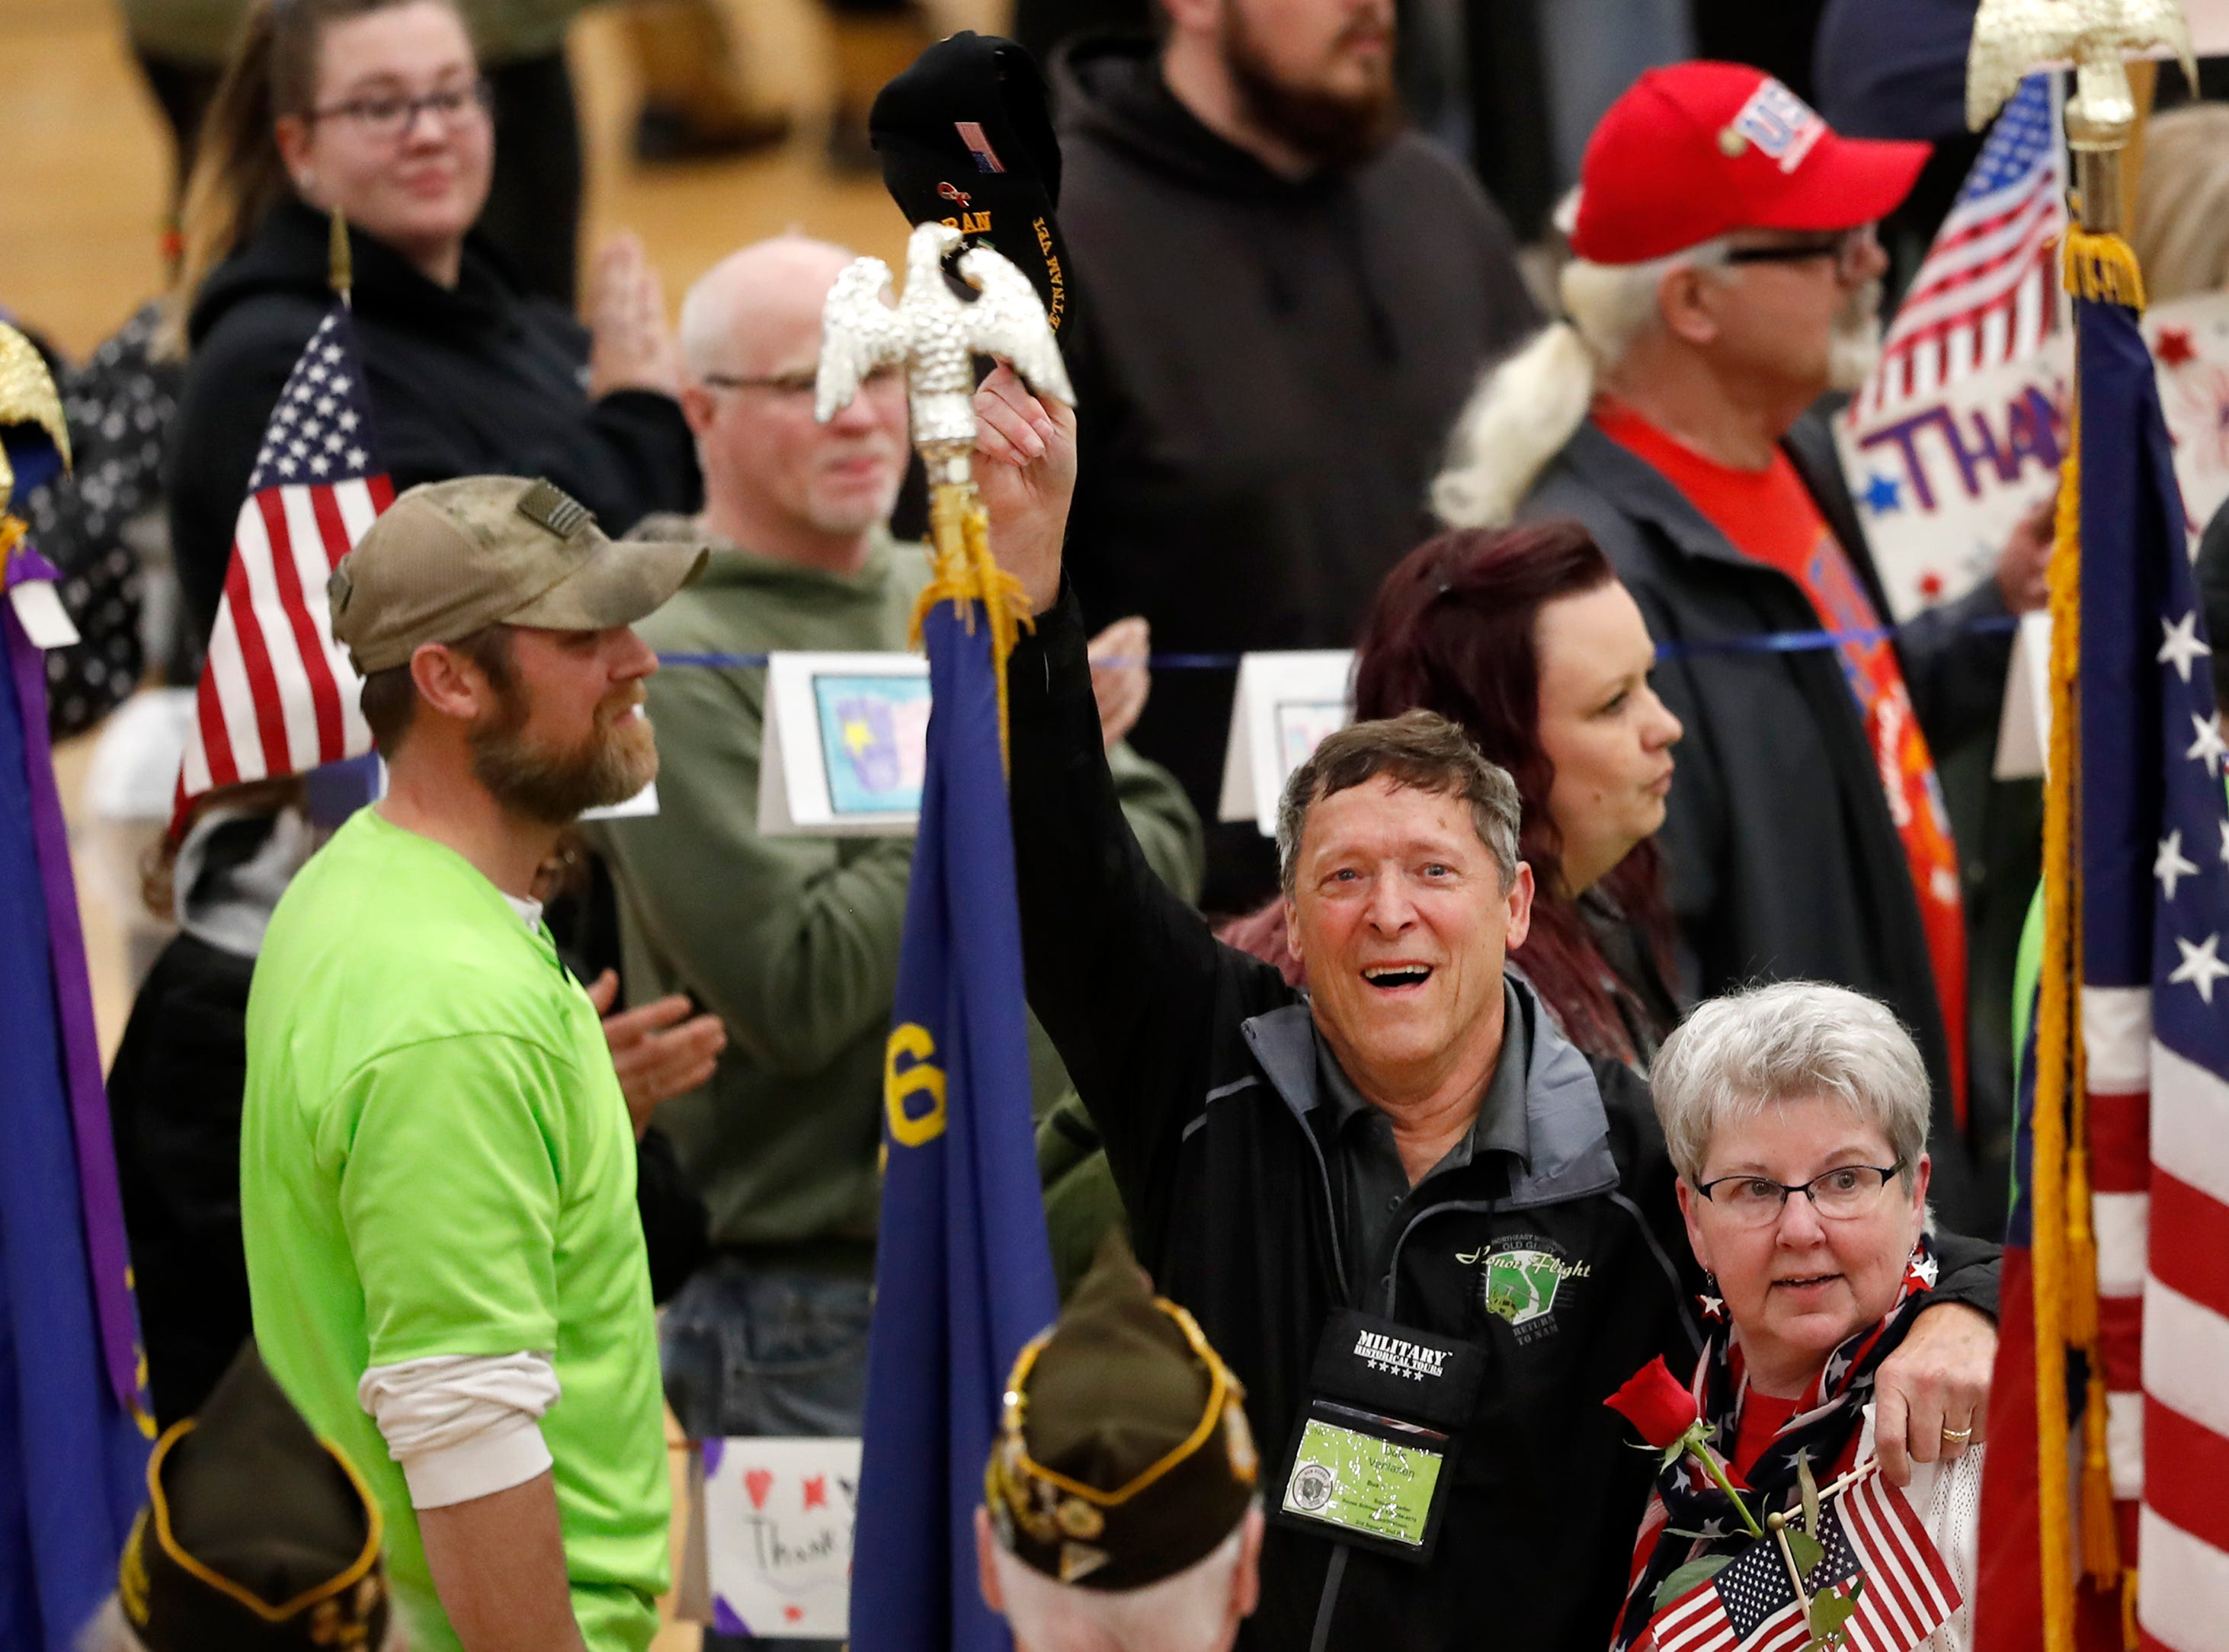 Dale Vanlanen raises his hat to the crowd as he walks to his seat during the Old Glory Honor Flight-Return to Nam welcome home Saturday, March 9, 2019, at Menasha High School in Menasha, Wis. Veterans were greeted by friends, family, the Menasha High School band, and the 484th Army Band.Danny Damiani/USA TODAY NETWORK-Wisconsin